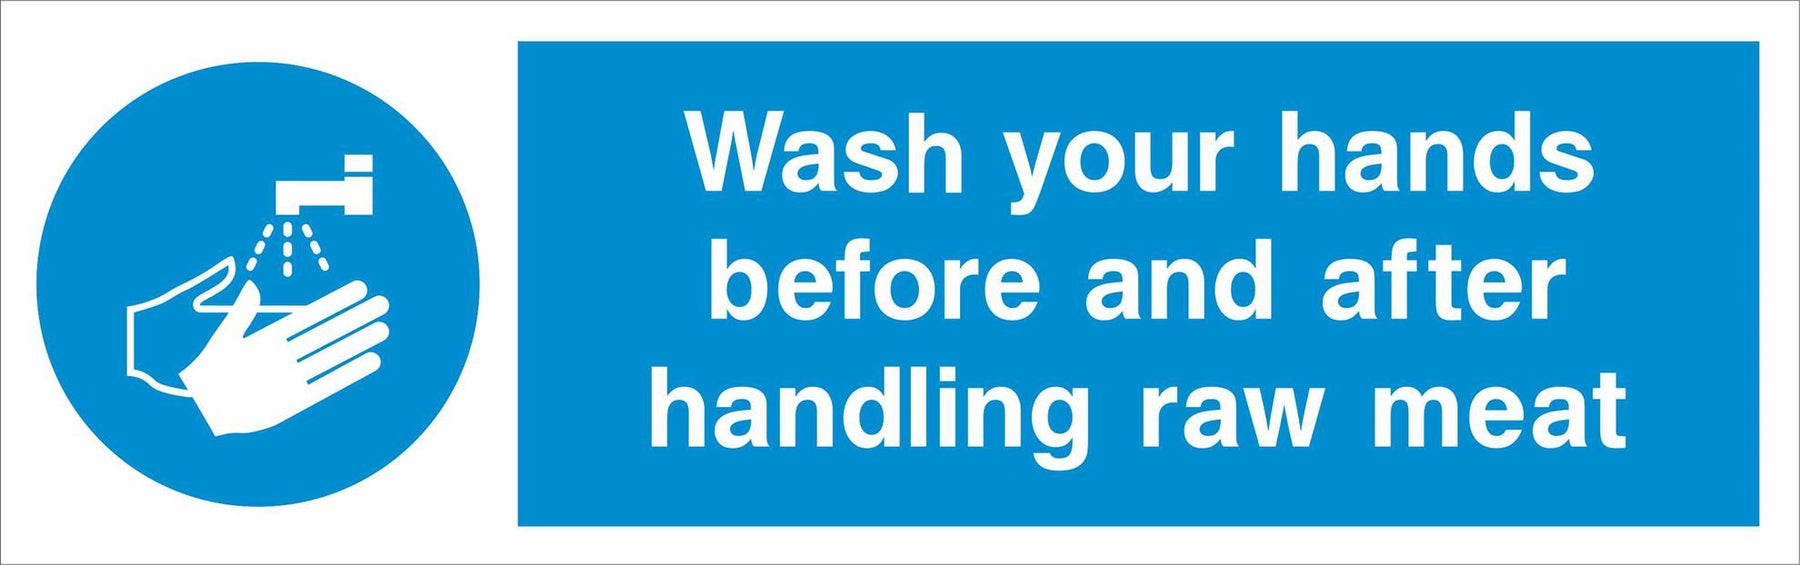 Wash your hands before and after handling raw meat